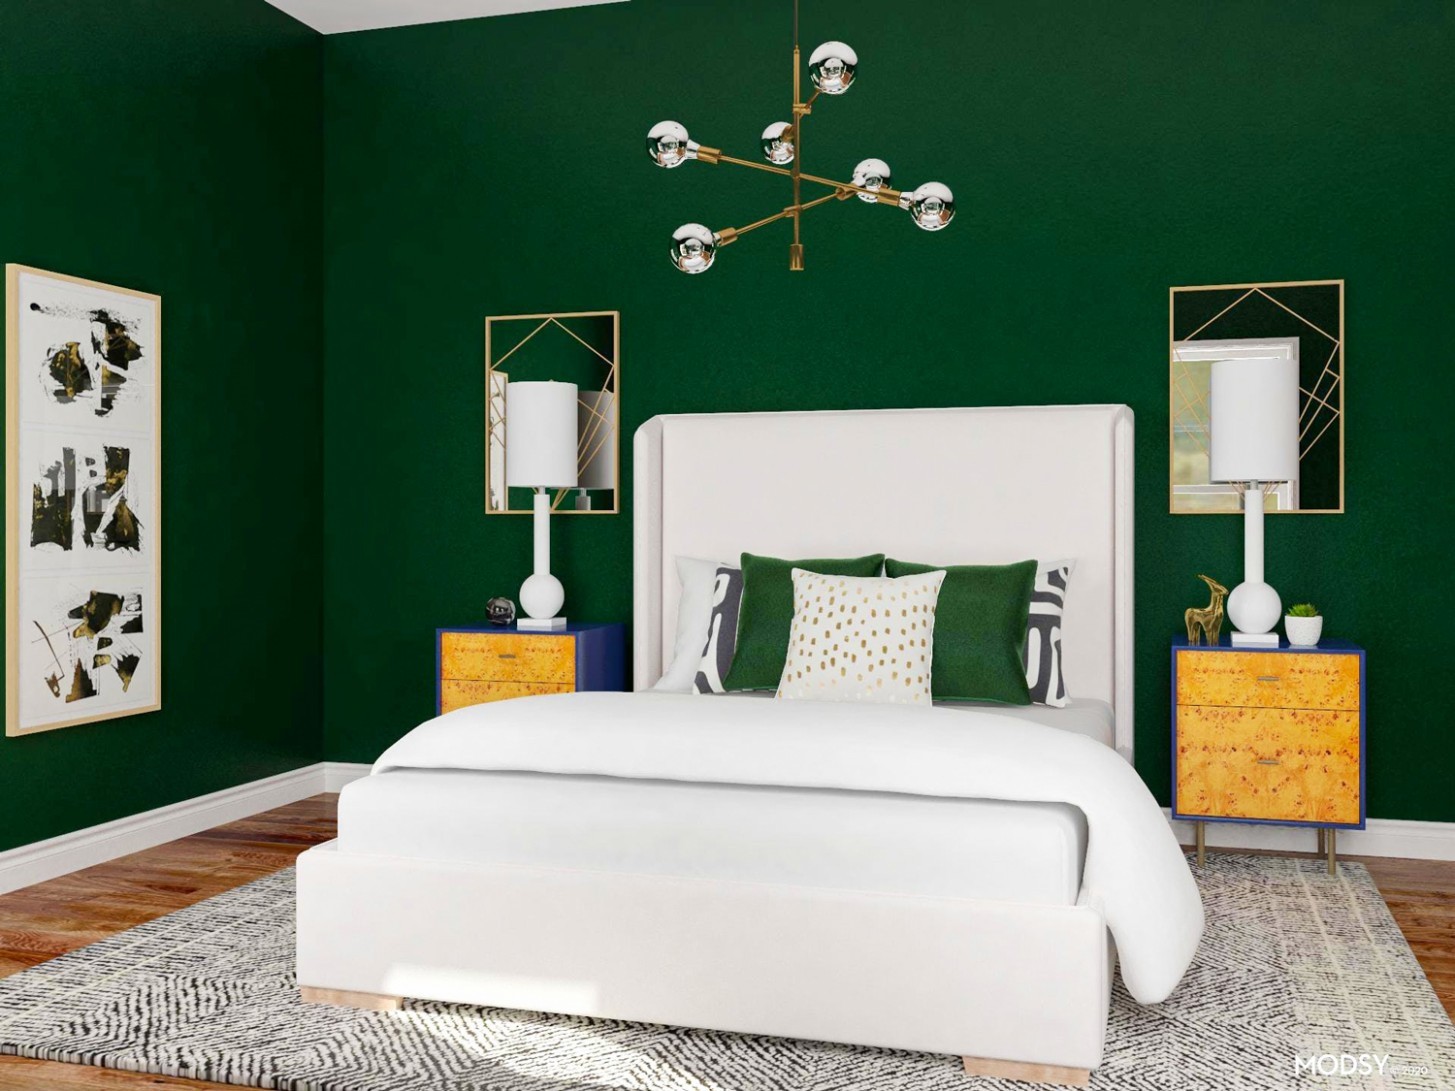 9 Green Bedroom Ideas for the Perfect Relaxing Retreat  Modsy Blog - Bedroom Ideas Emerald Green